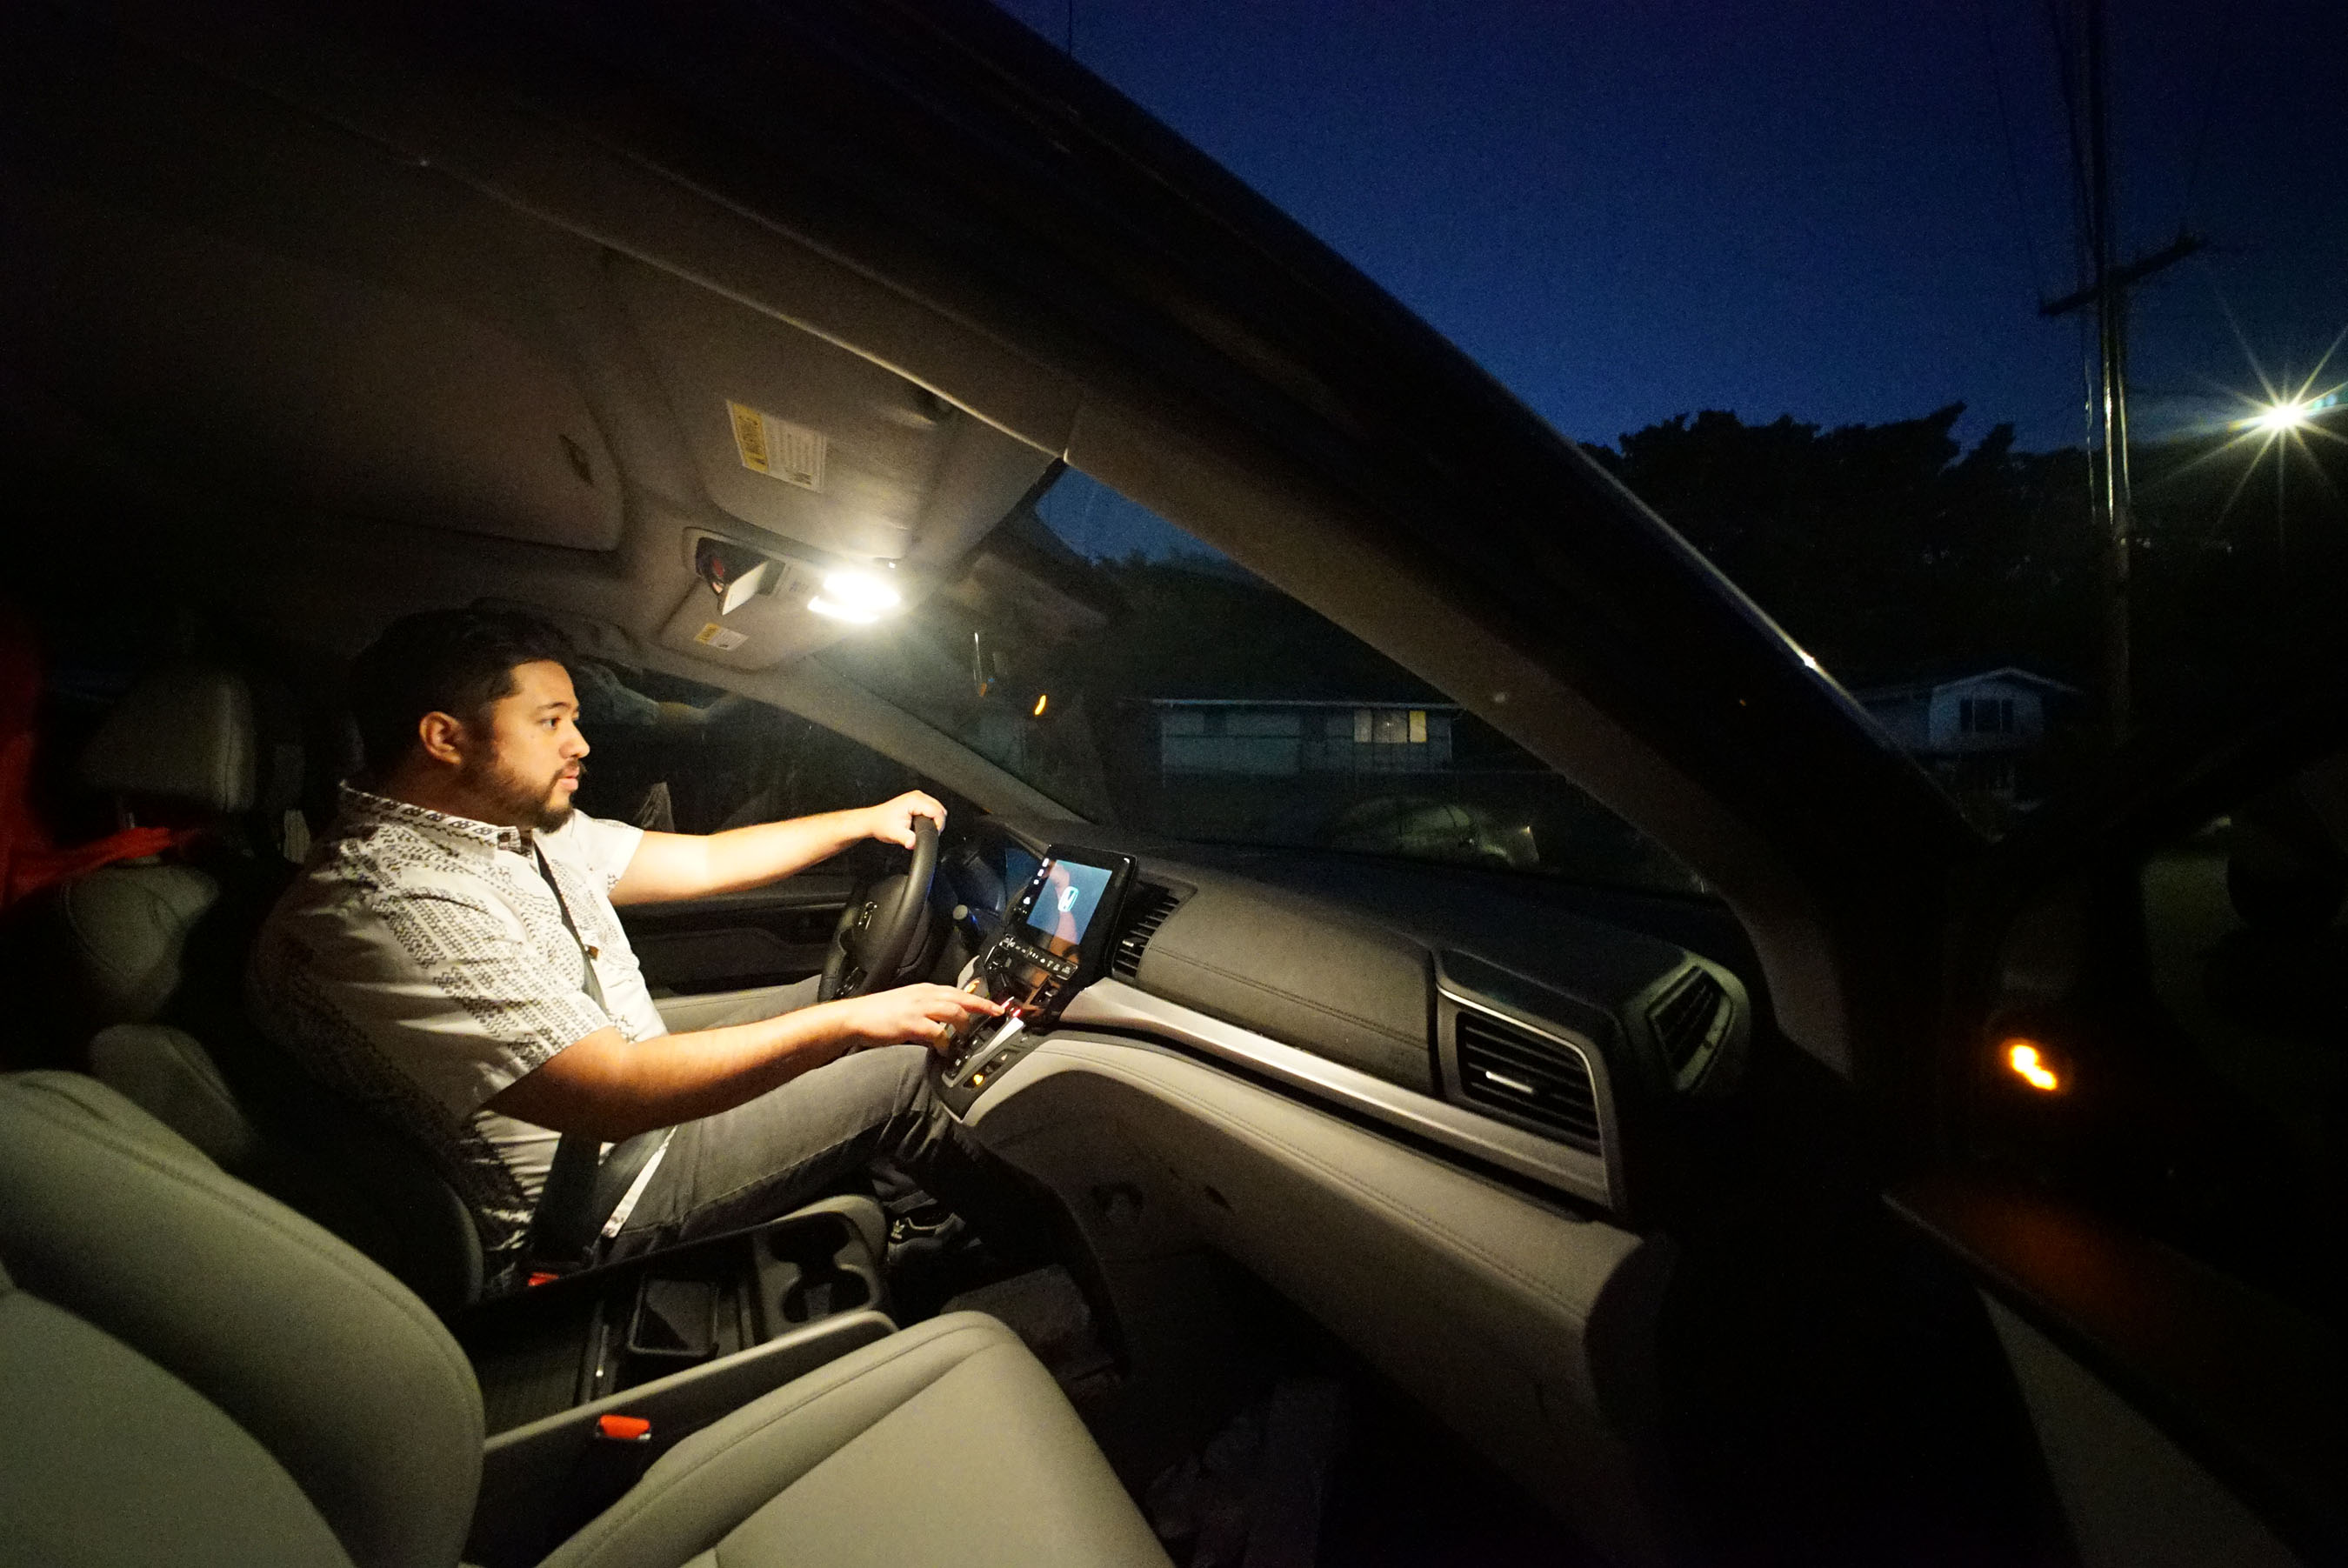 Zuri Aki leaves his multigenerational home on his way on a long commute from Mililani to town